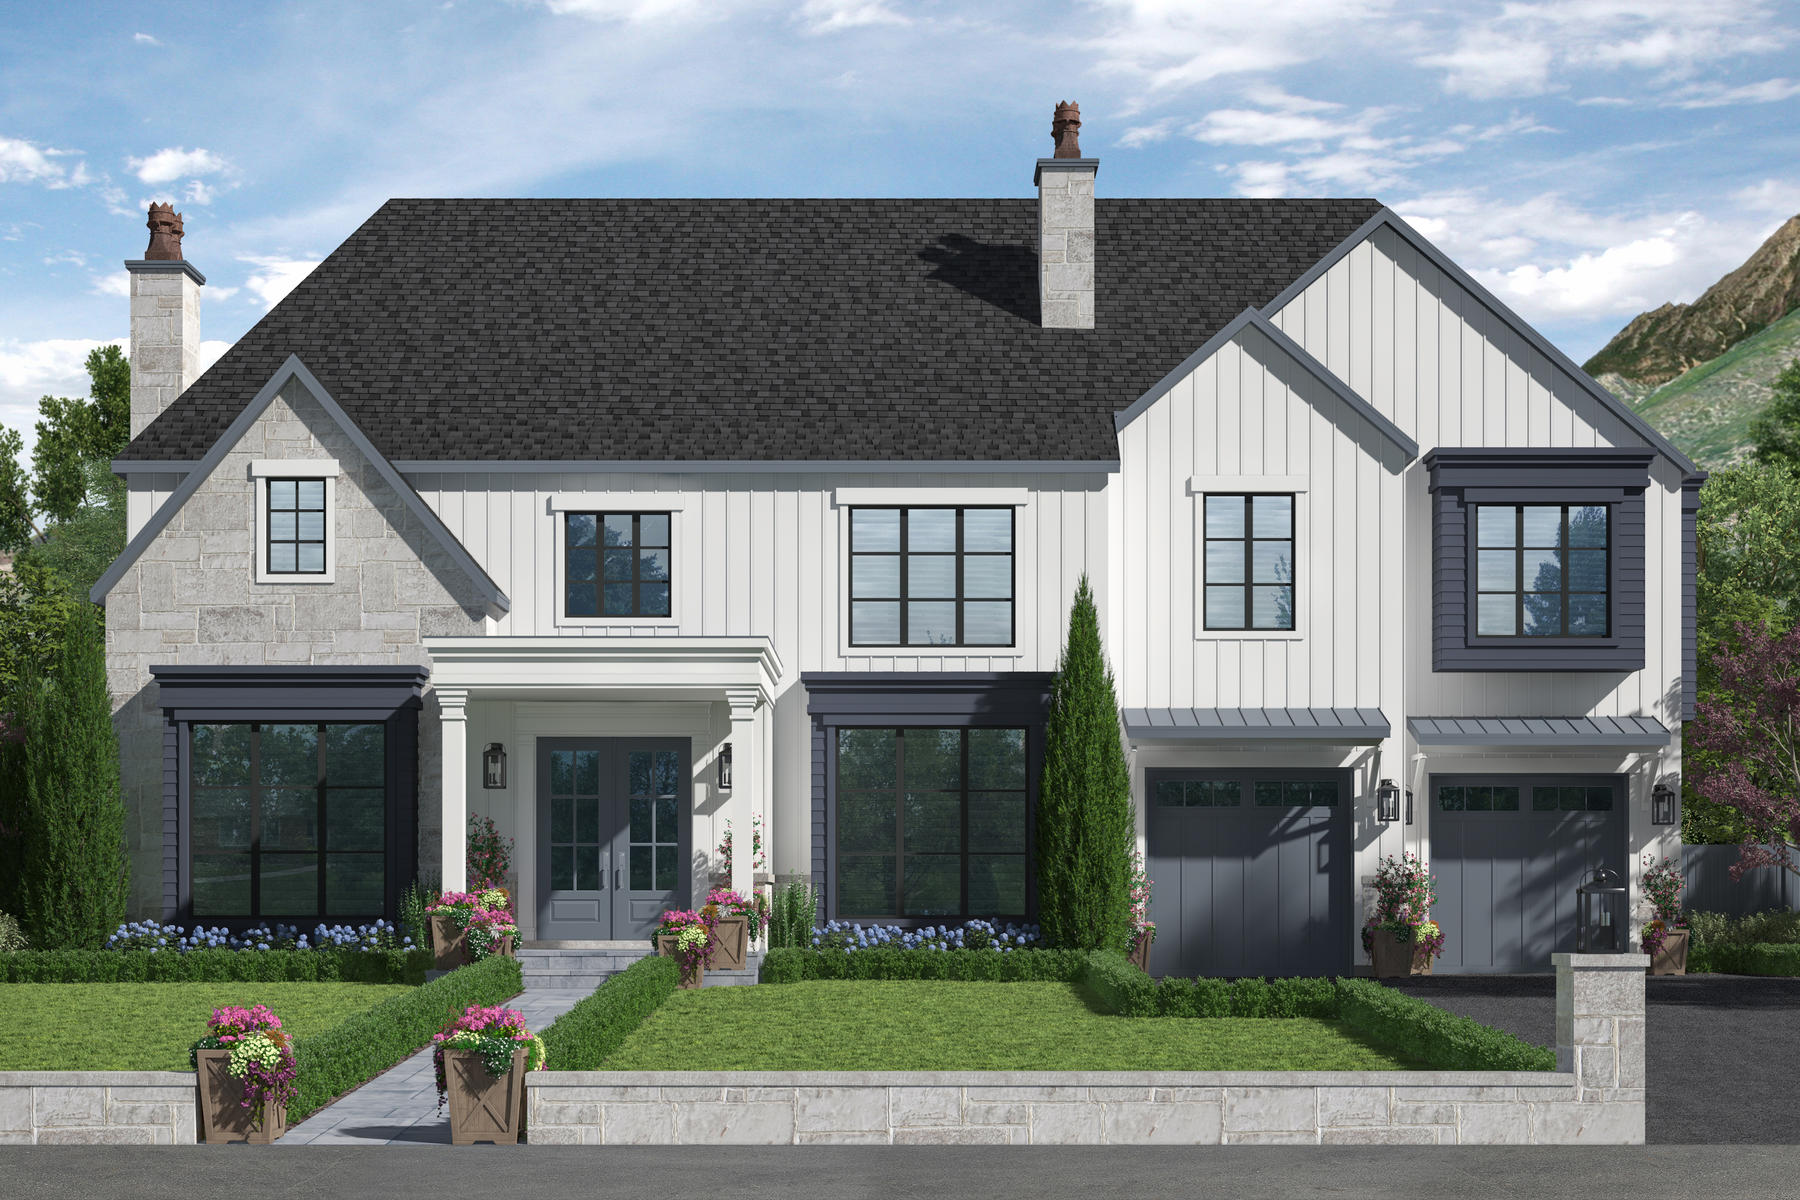 Single Family Homes for Sale at Sophisticated New Construction 4975 S Memory Ln Holladay, Utah 84117 United States